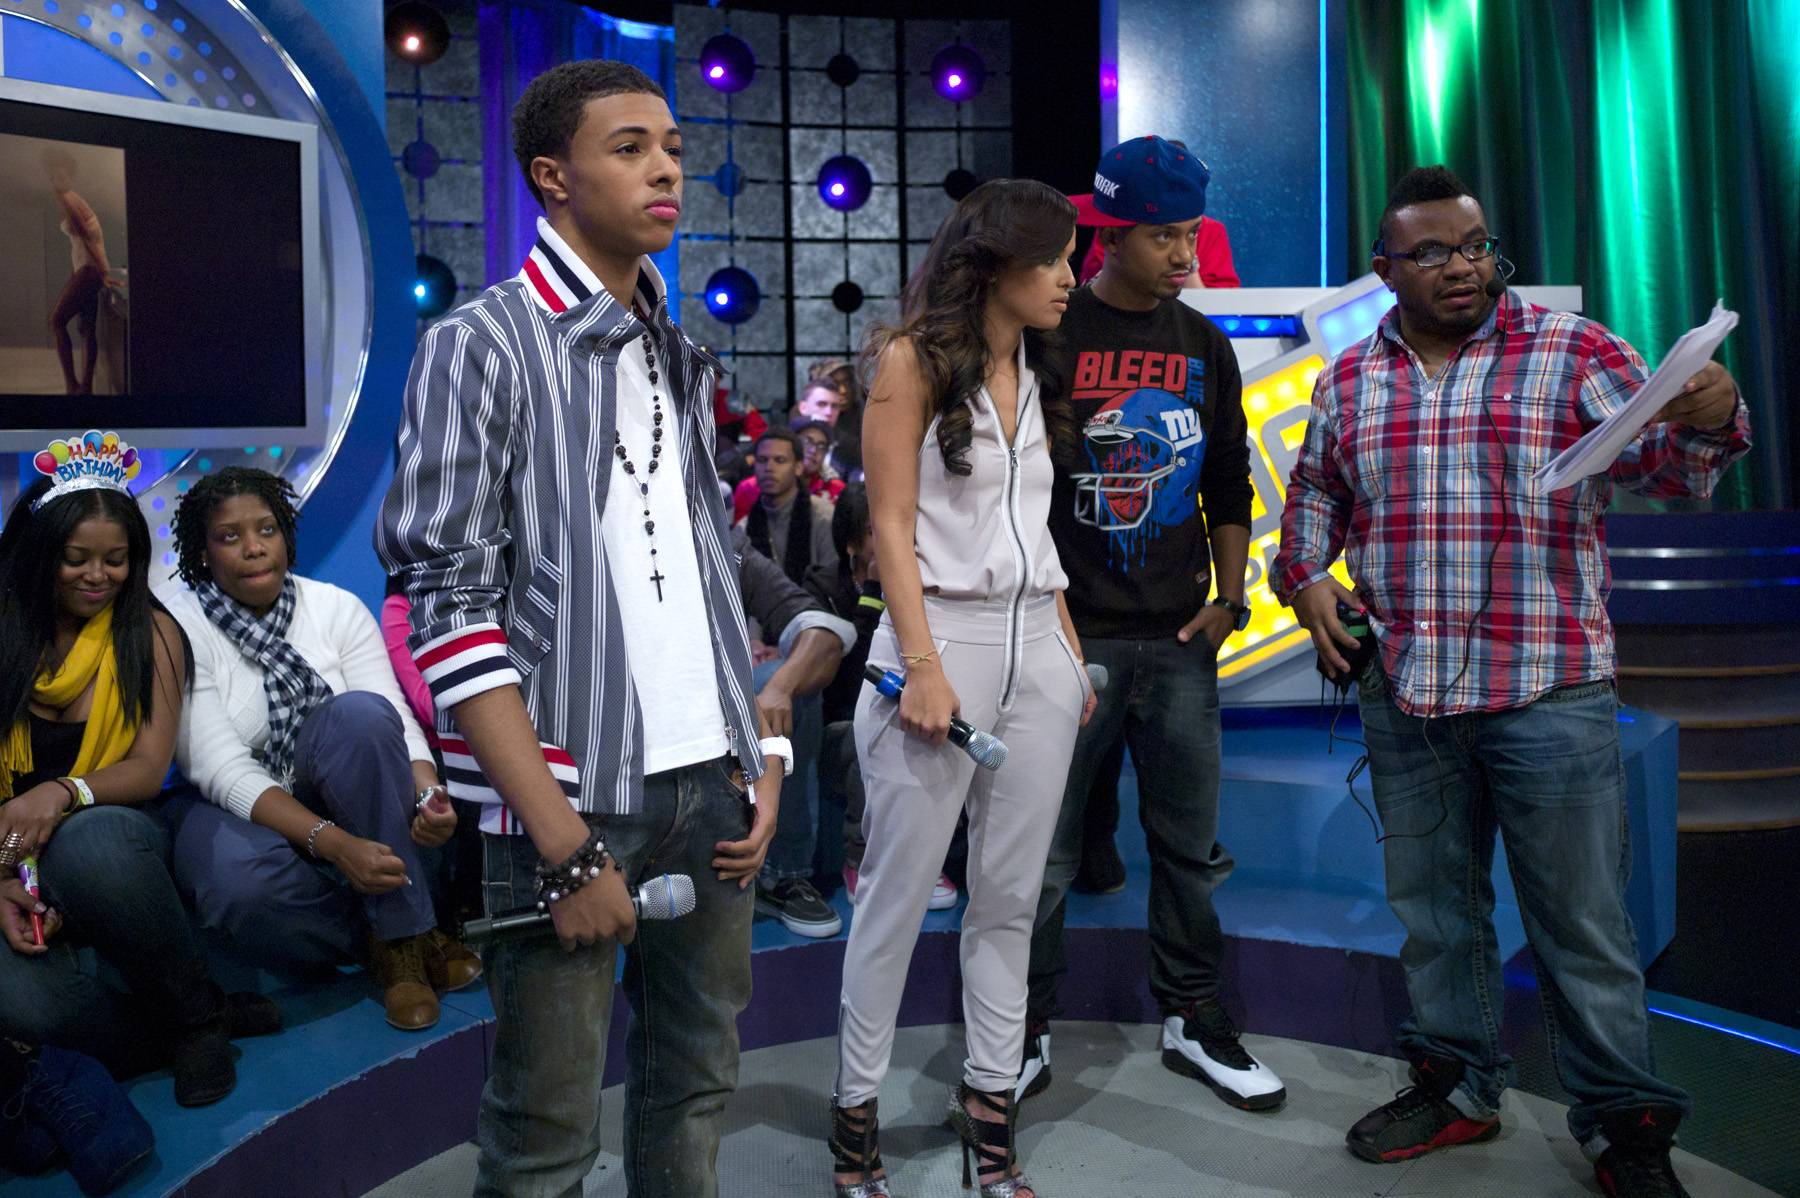 Take a Break - Diggy Simmons reflects during a commercial break at 106 & Park, January 20, 2012. (Photo: John Ricard / BET)